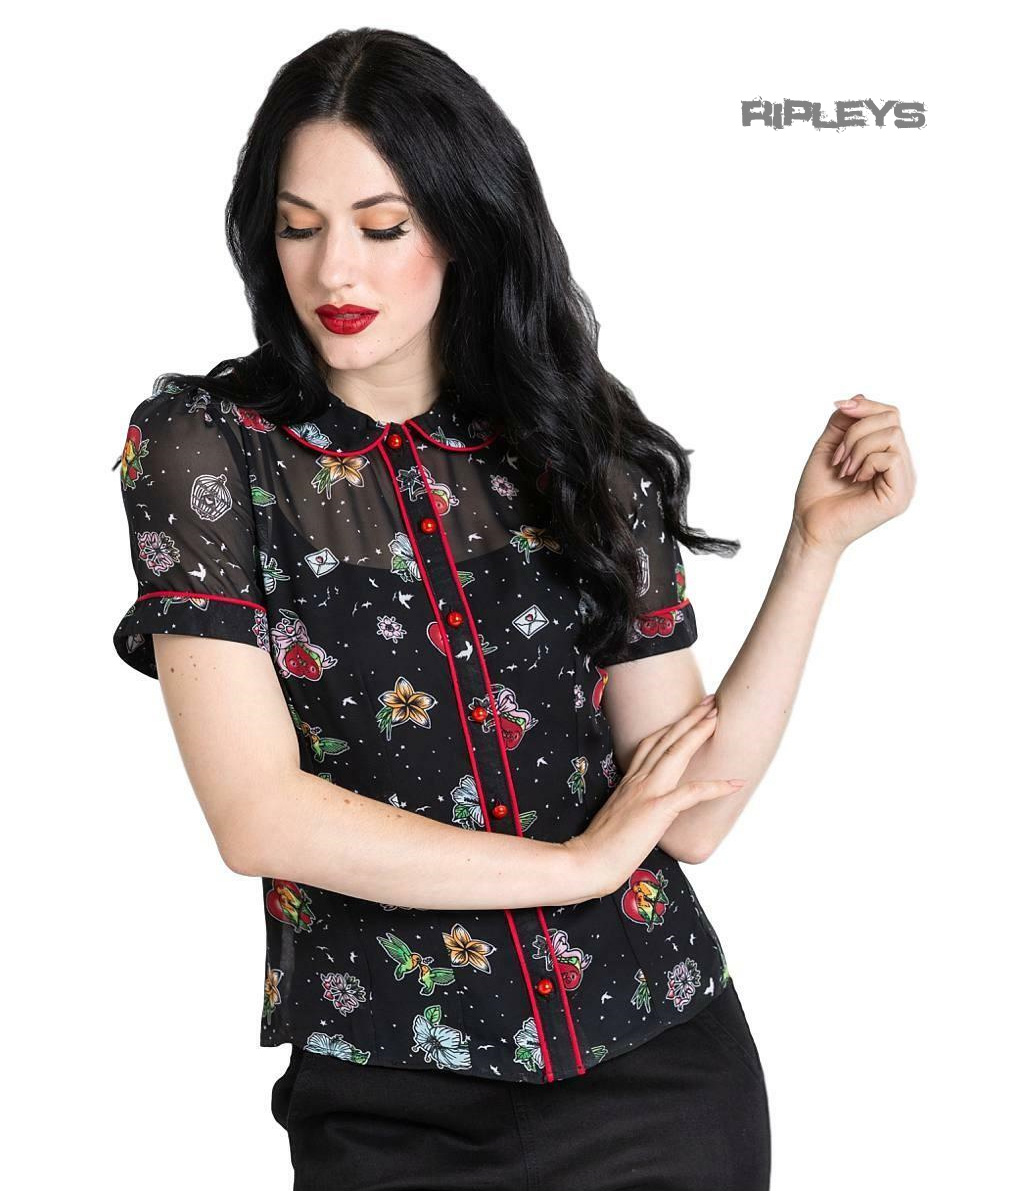 Hell-Bunny-Shirt-Top-Black-LOVEBIRD-Blouse-Retro-Vintage-Flowers-All-Sizes thumbnail 2